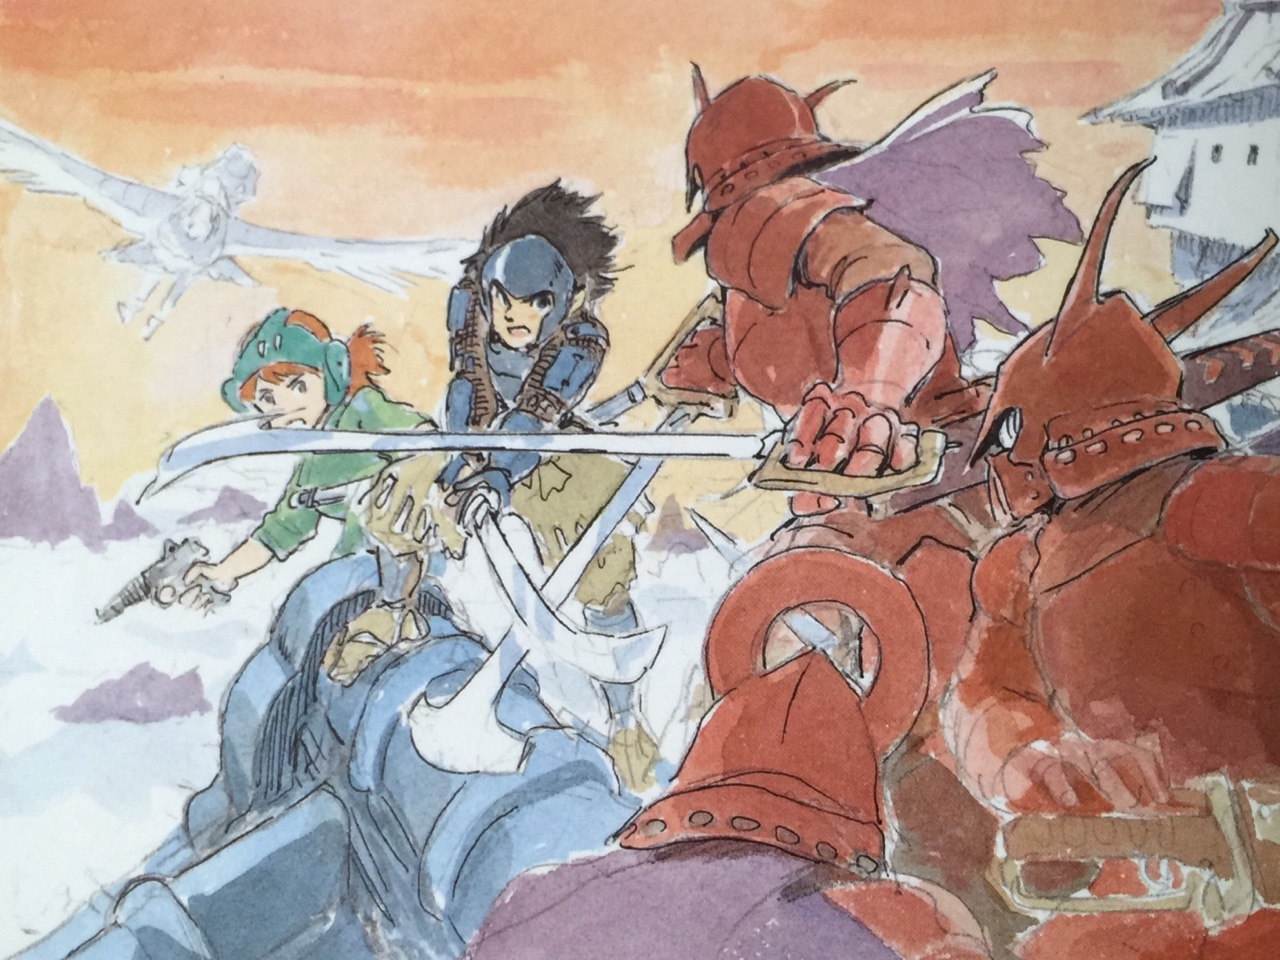 Hayao-Miyazaki-The-Art-of-Nausica-Of-The-Valley-Of-The-Wind-Watercolor-Impressions-nausicaa-of-the-valley-of-the-wind-39115023-1280-960.jpg